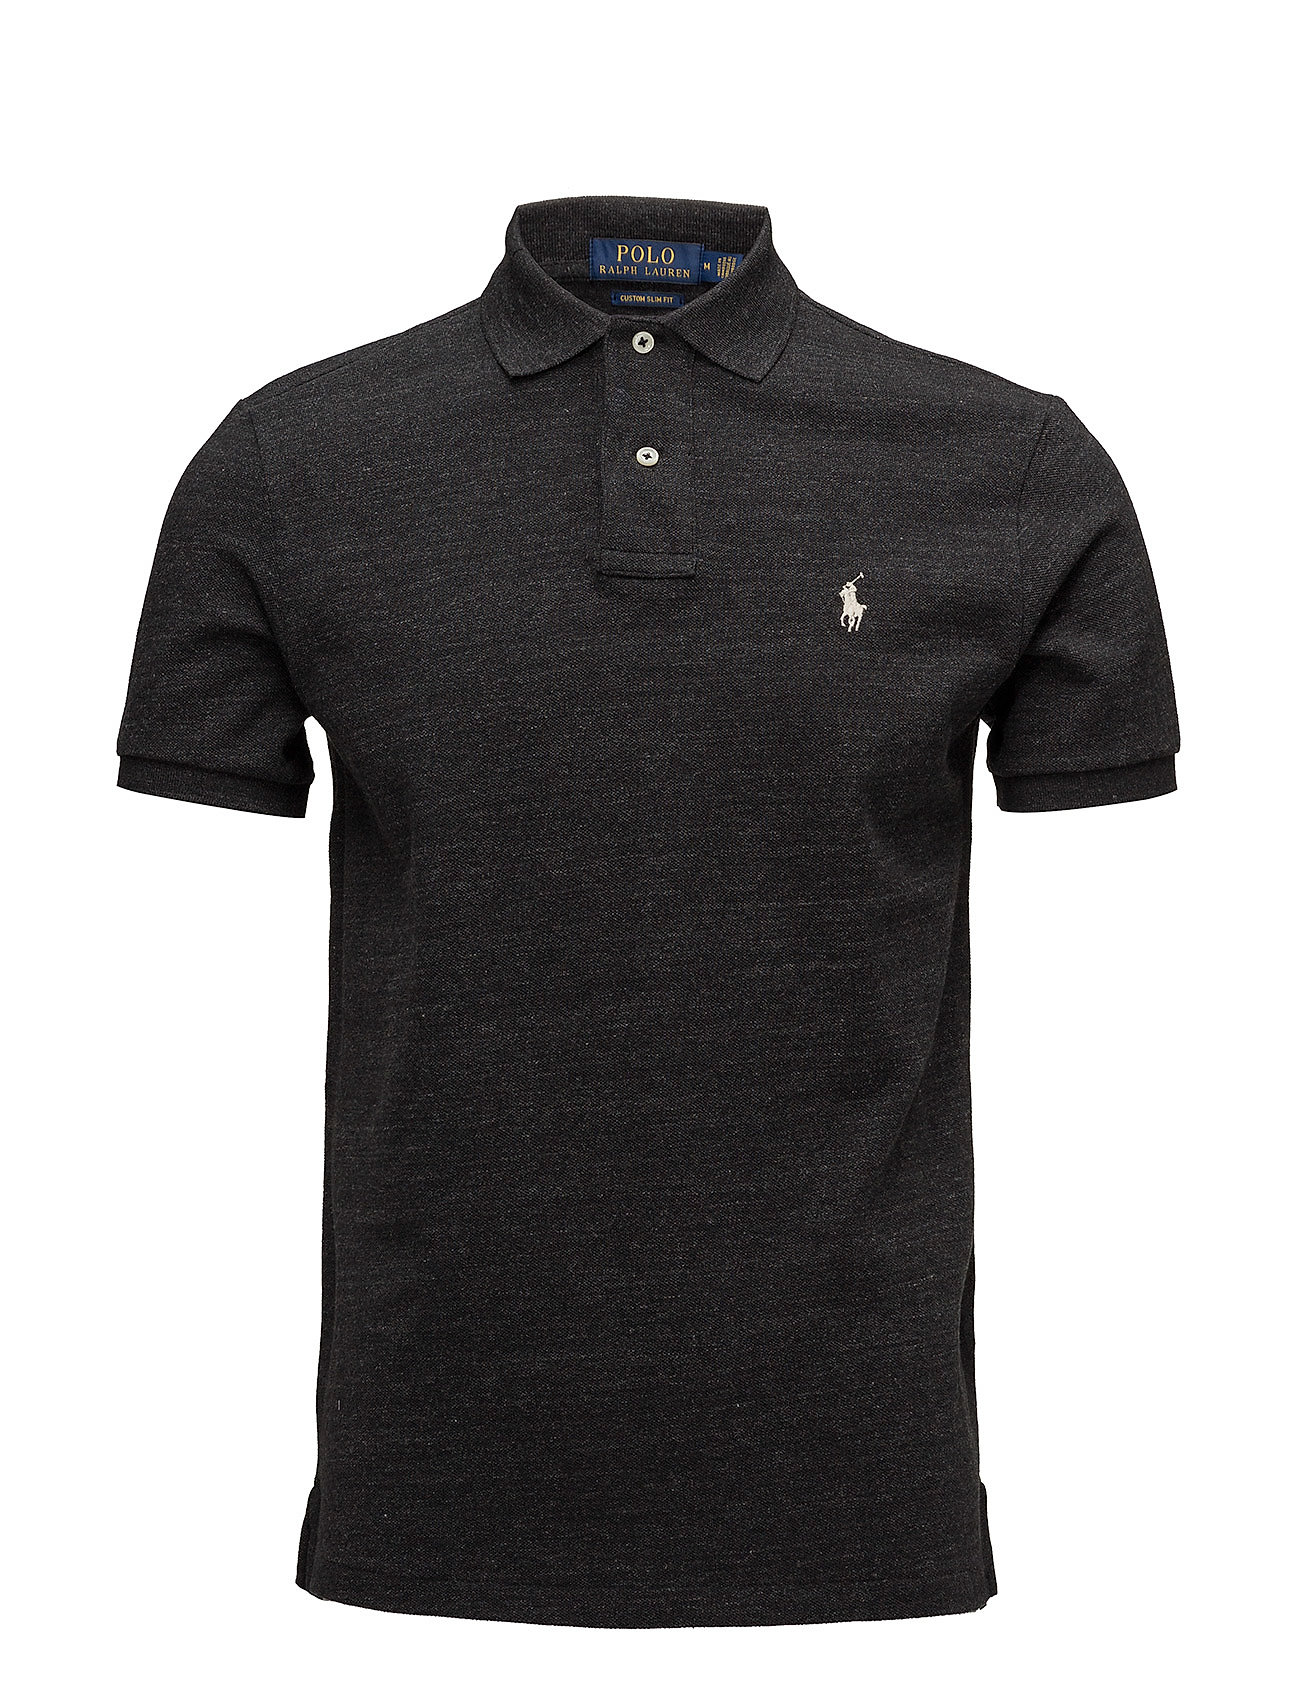 Polo Ralph Lauren SSKCCMSLM1-SHORT SLEEVE-KNIT - BLACK MARL HEATHE